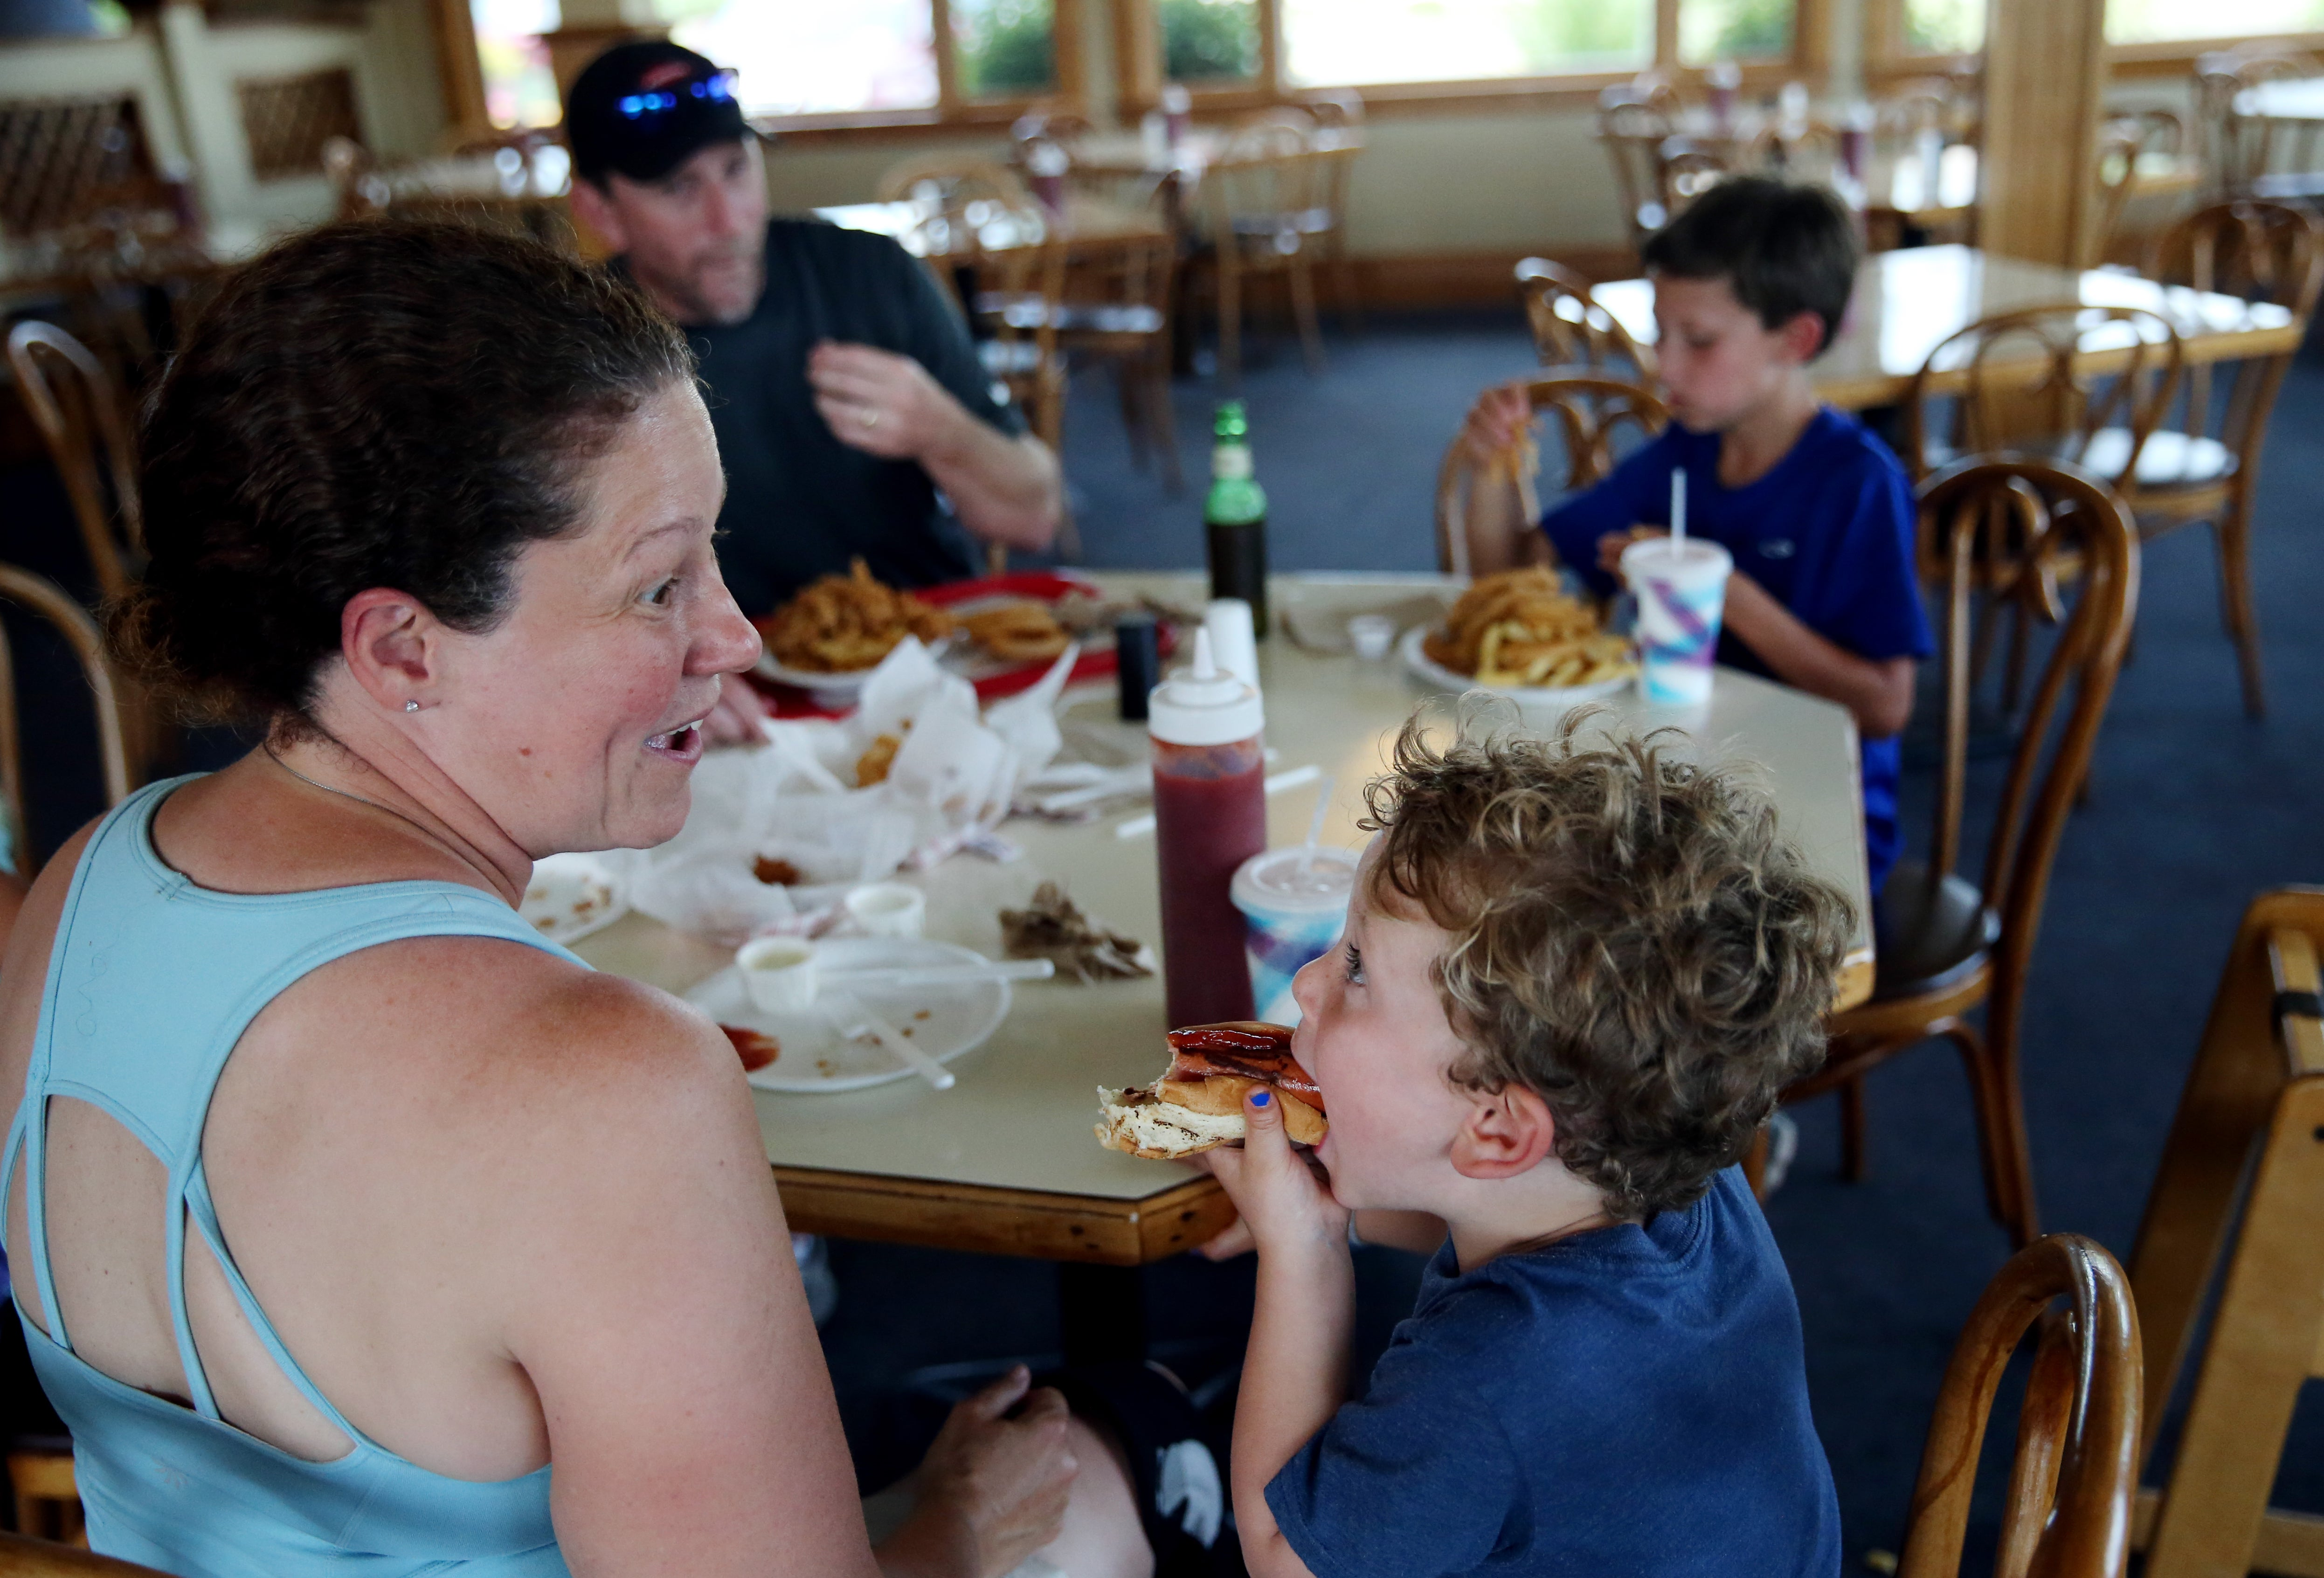 08/26/2015 Dennis, MA – Beth Boulay (cq) jokes with her son Ryan, 4, (cq) while having lunch with their family at Kream 'N Kone in West Dennis, MA on August 26, 2015. (Craig F. Walker / Globe Staff)